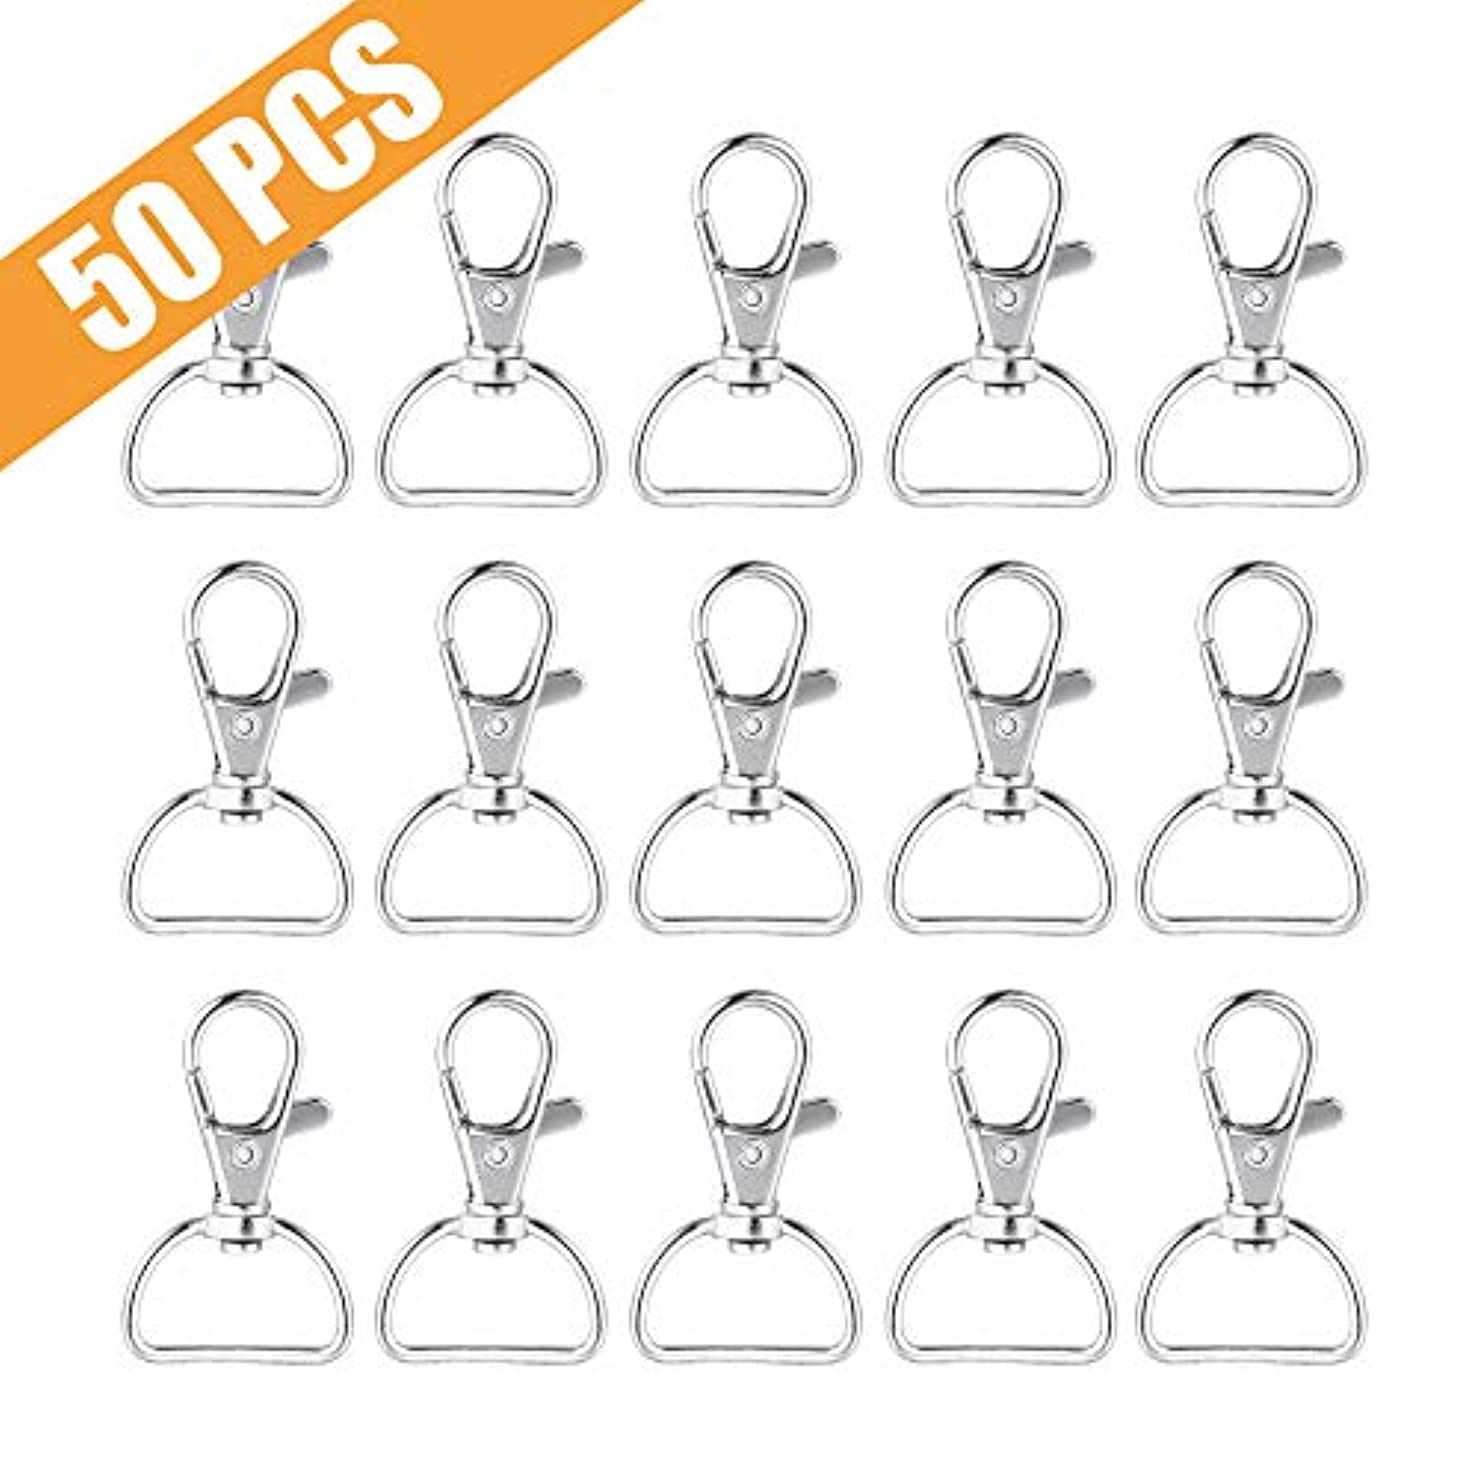 Metal Swivel Clasps Lanyard Snap Hook Lobster Claw Clasp for Jewelry Findings, Key Chain Clip, DIY Crafts. Pack of 50